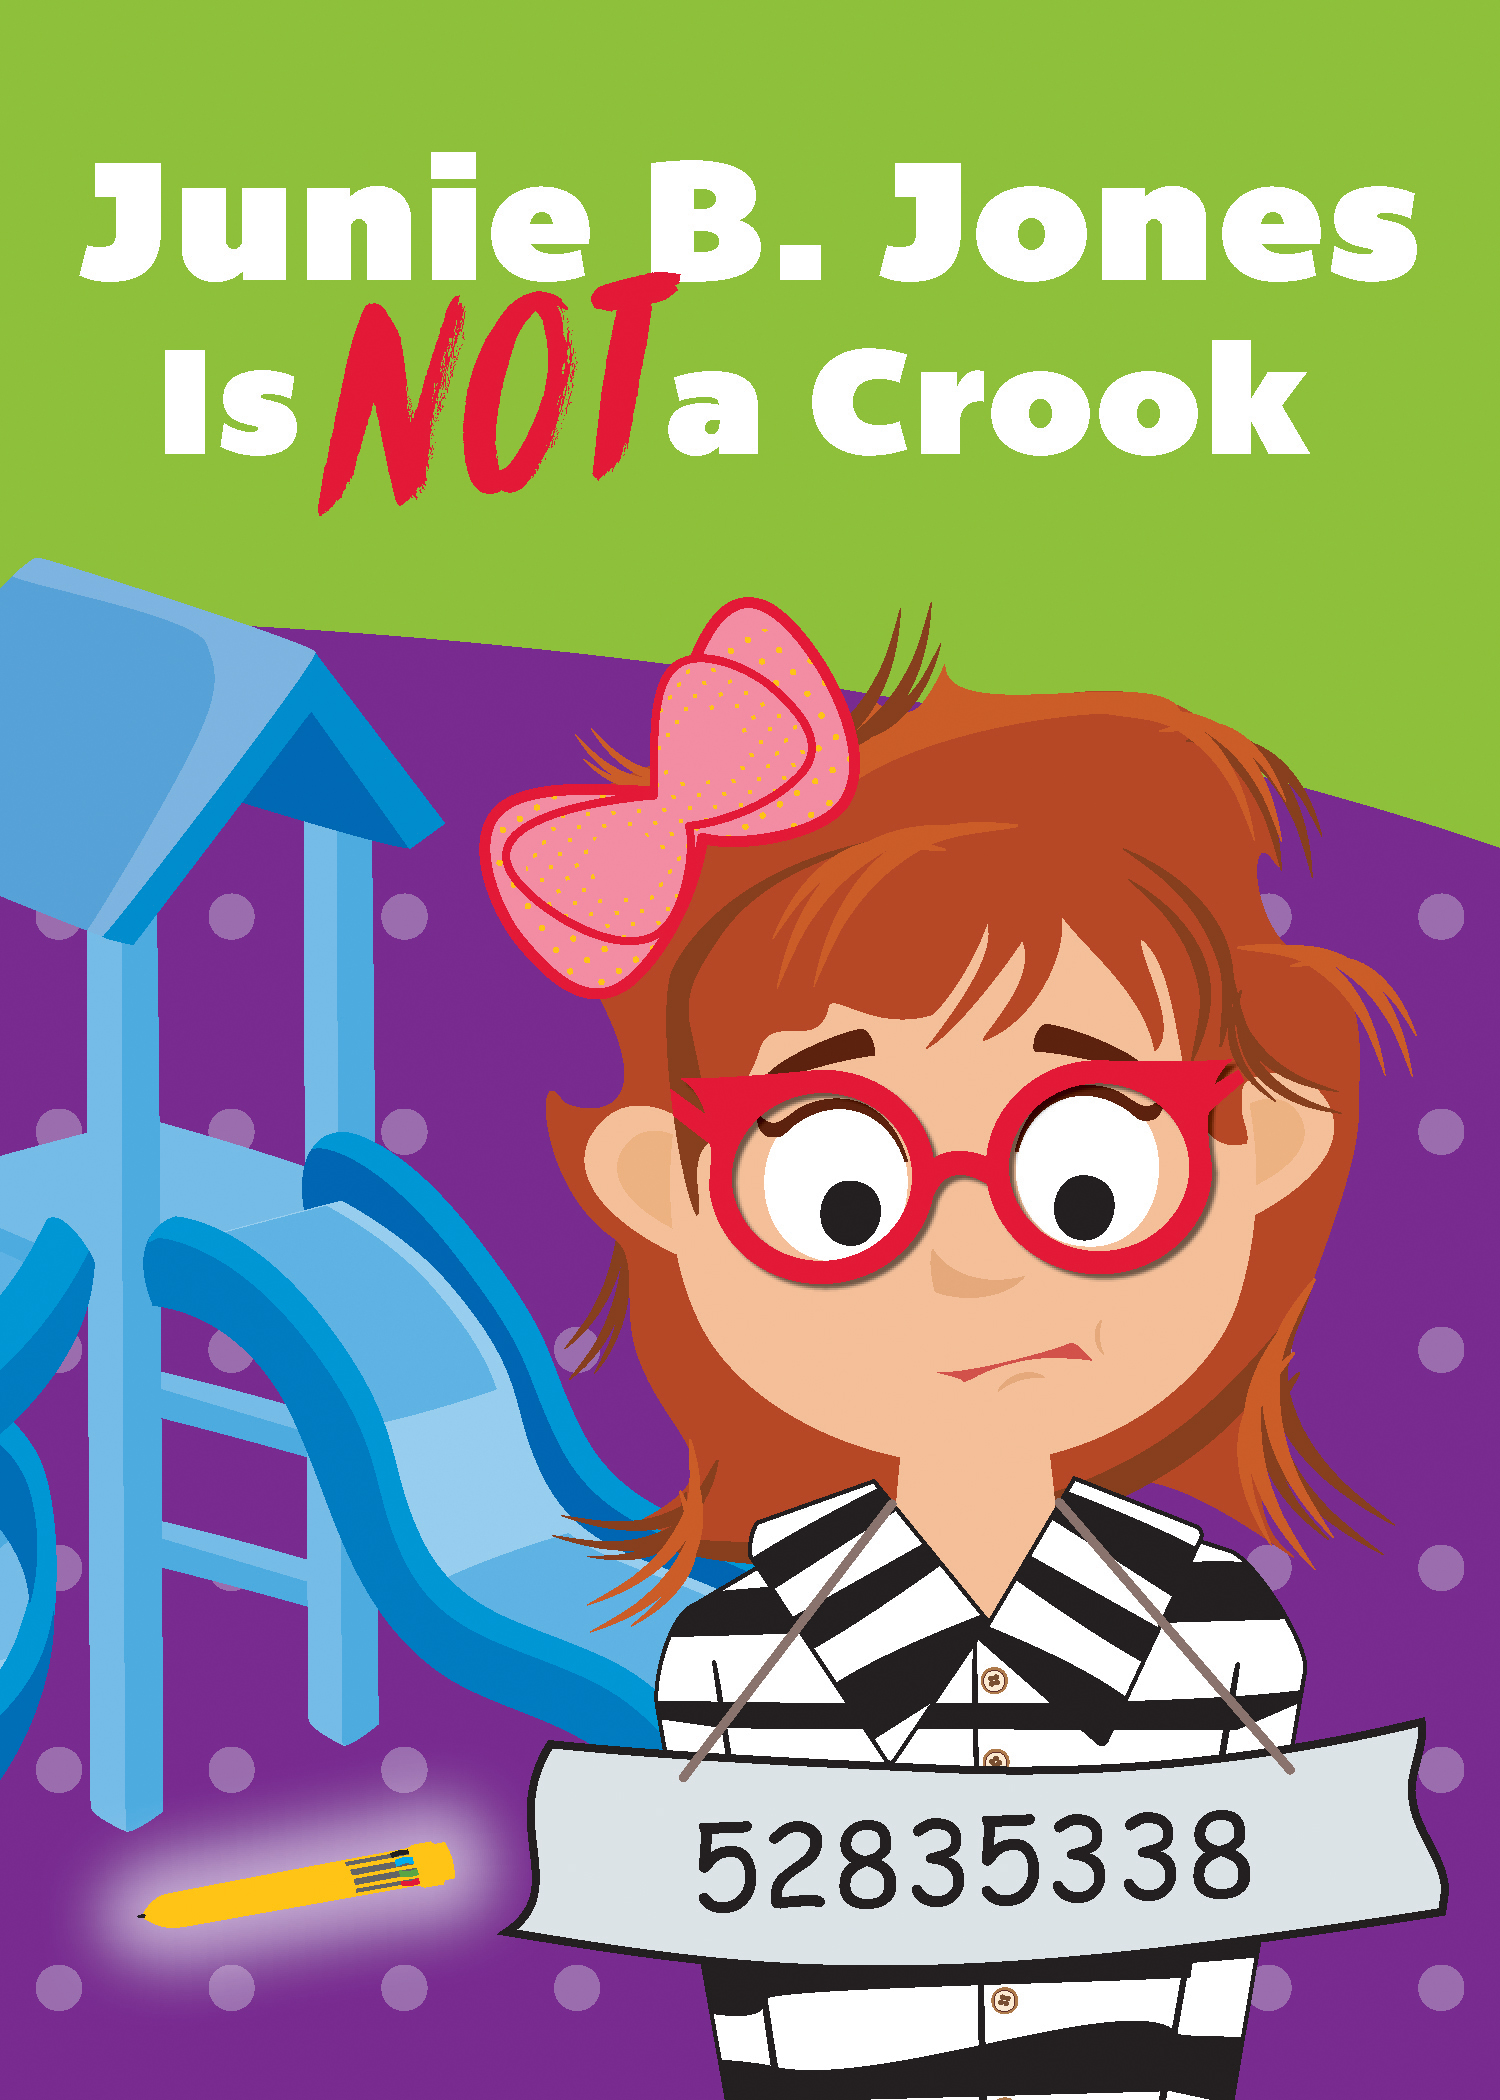 Junie B. Jones starts... - JANUARY 2018Paul started rehearsals at South Coast Repertory for Junie B. Jones is Not a Crook. Click here to see more about the cast!